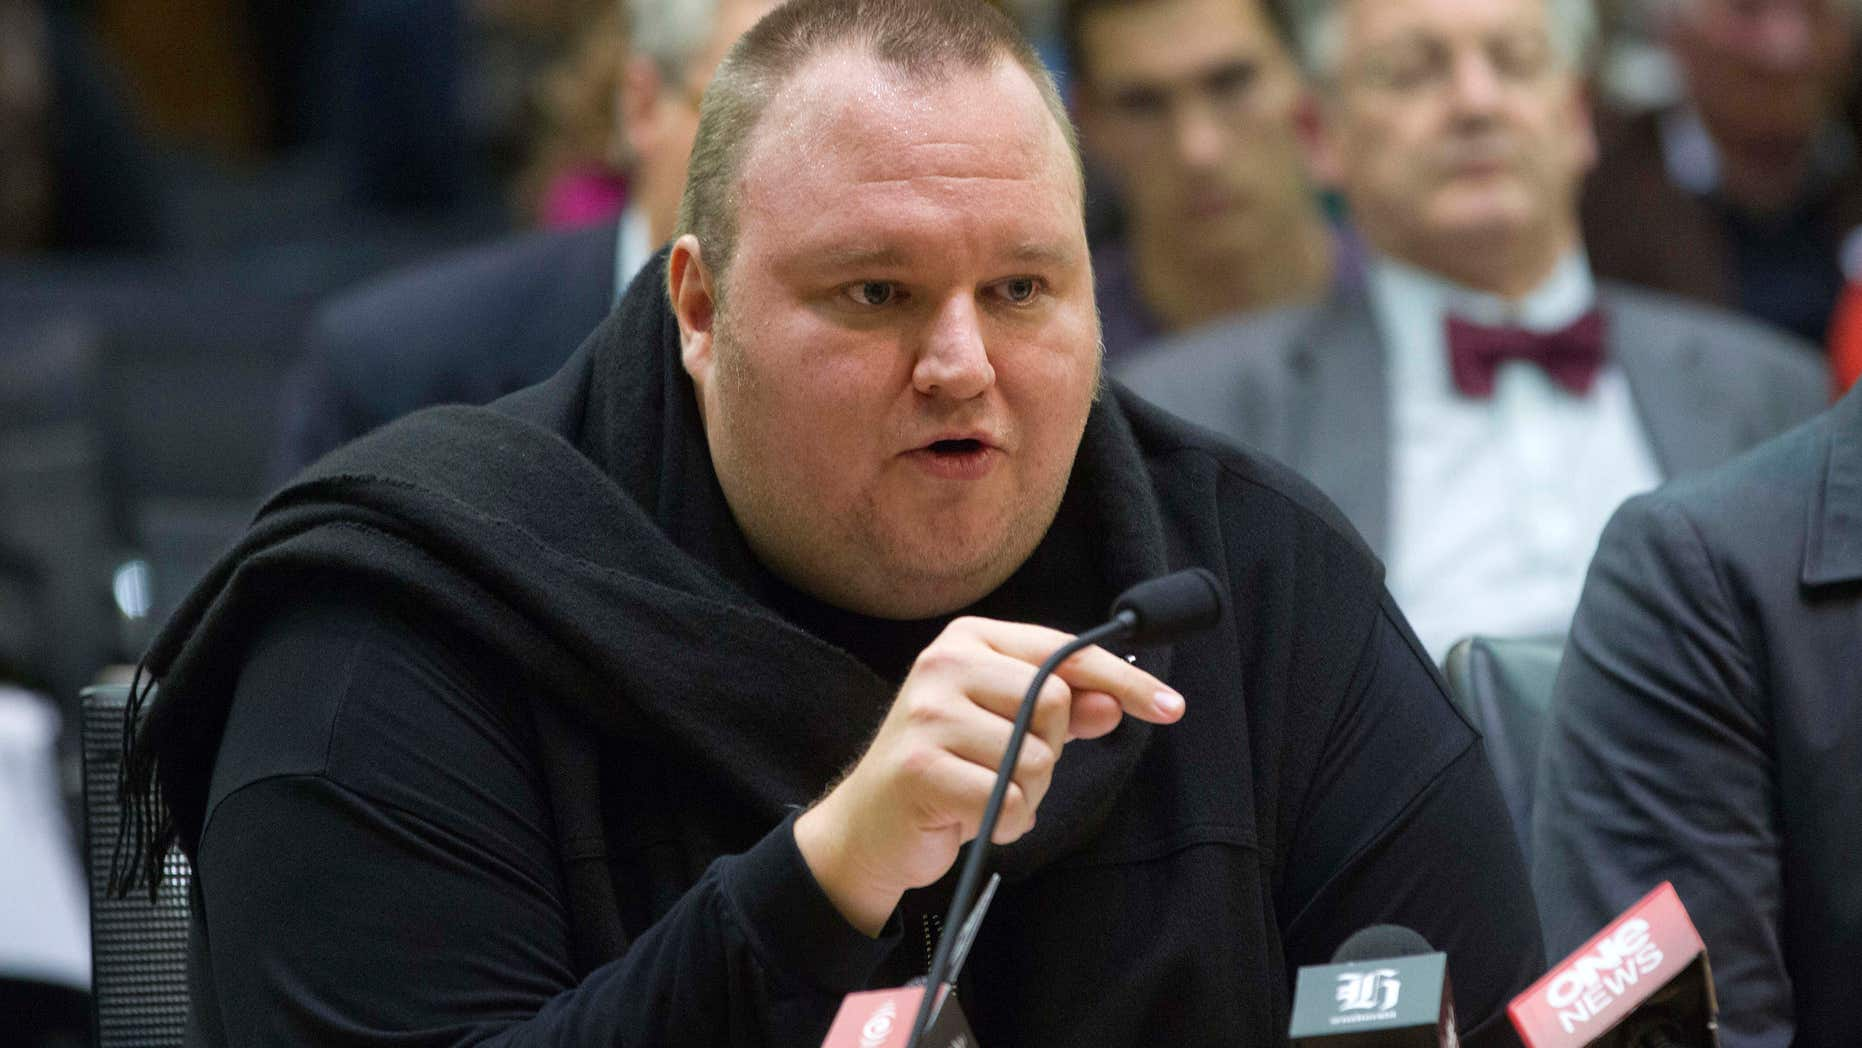 FILE - In this Wednesday, July 3, 2013 file photo, Internet entrepreneur Kim Dotcom speaks during the Intelligence and Security select committee hearing at Parliament in Wellington, New Zealand.